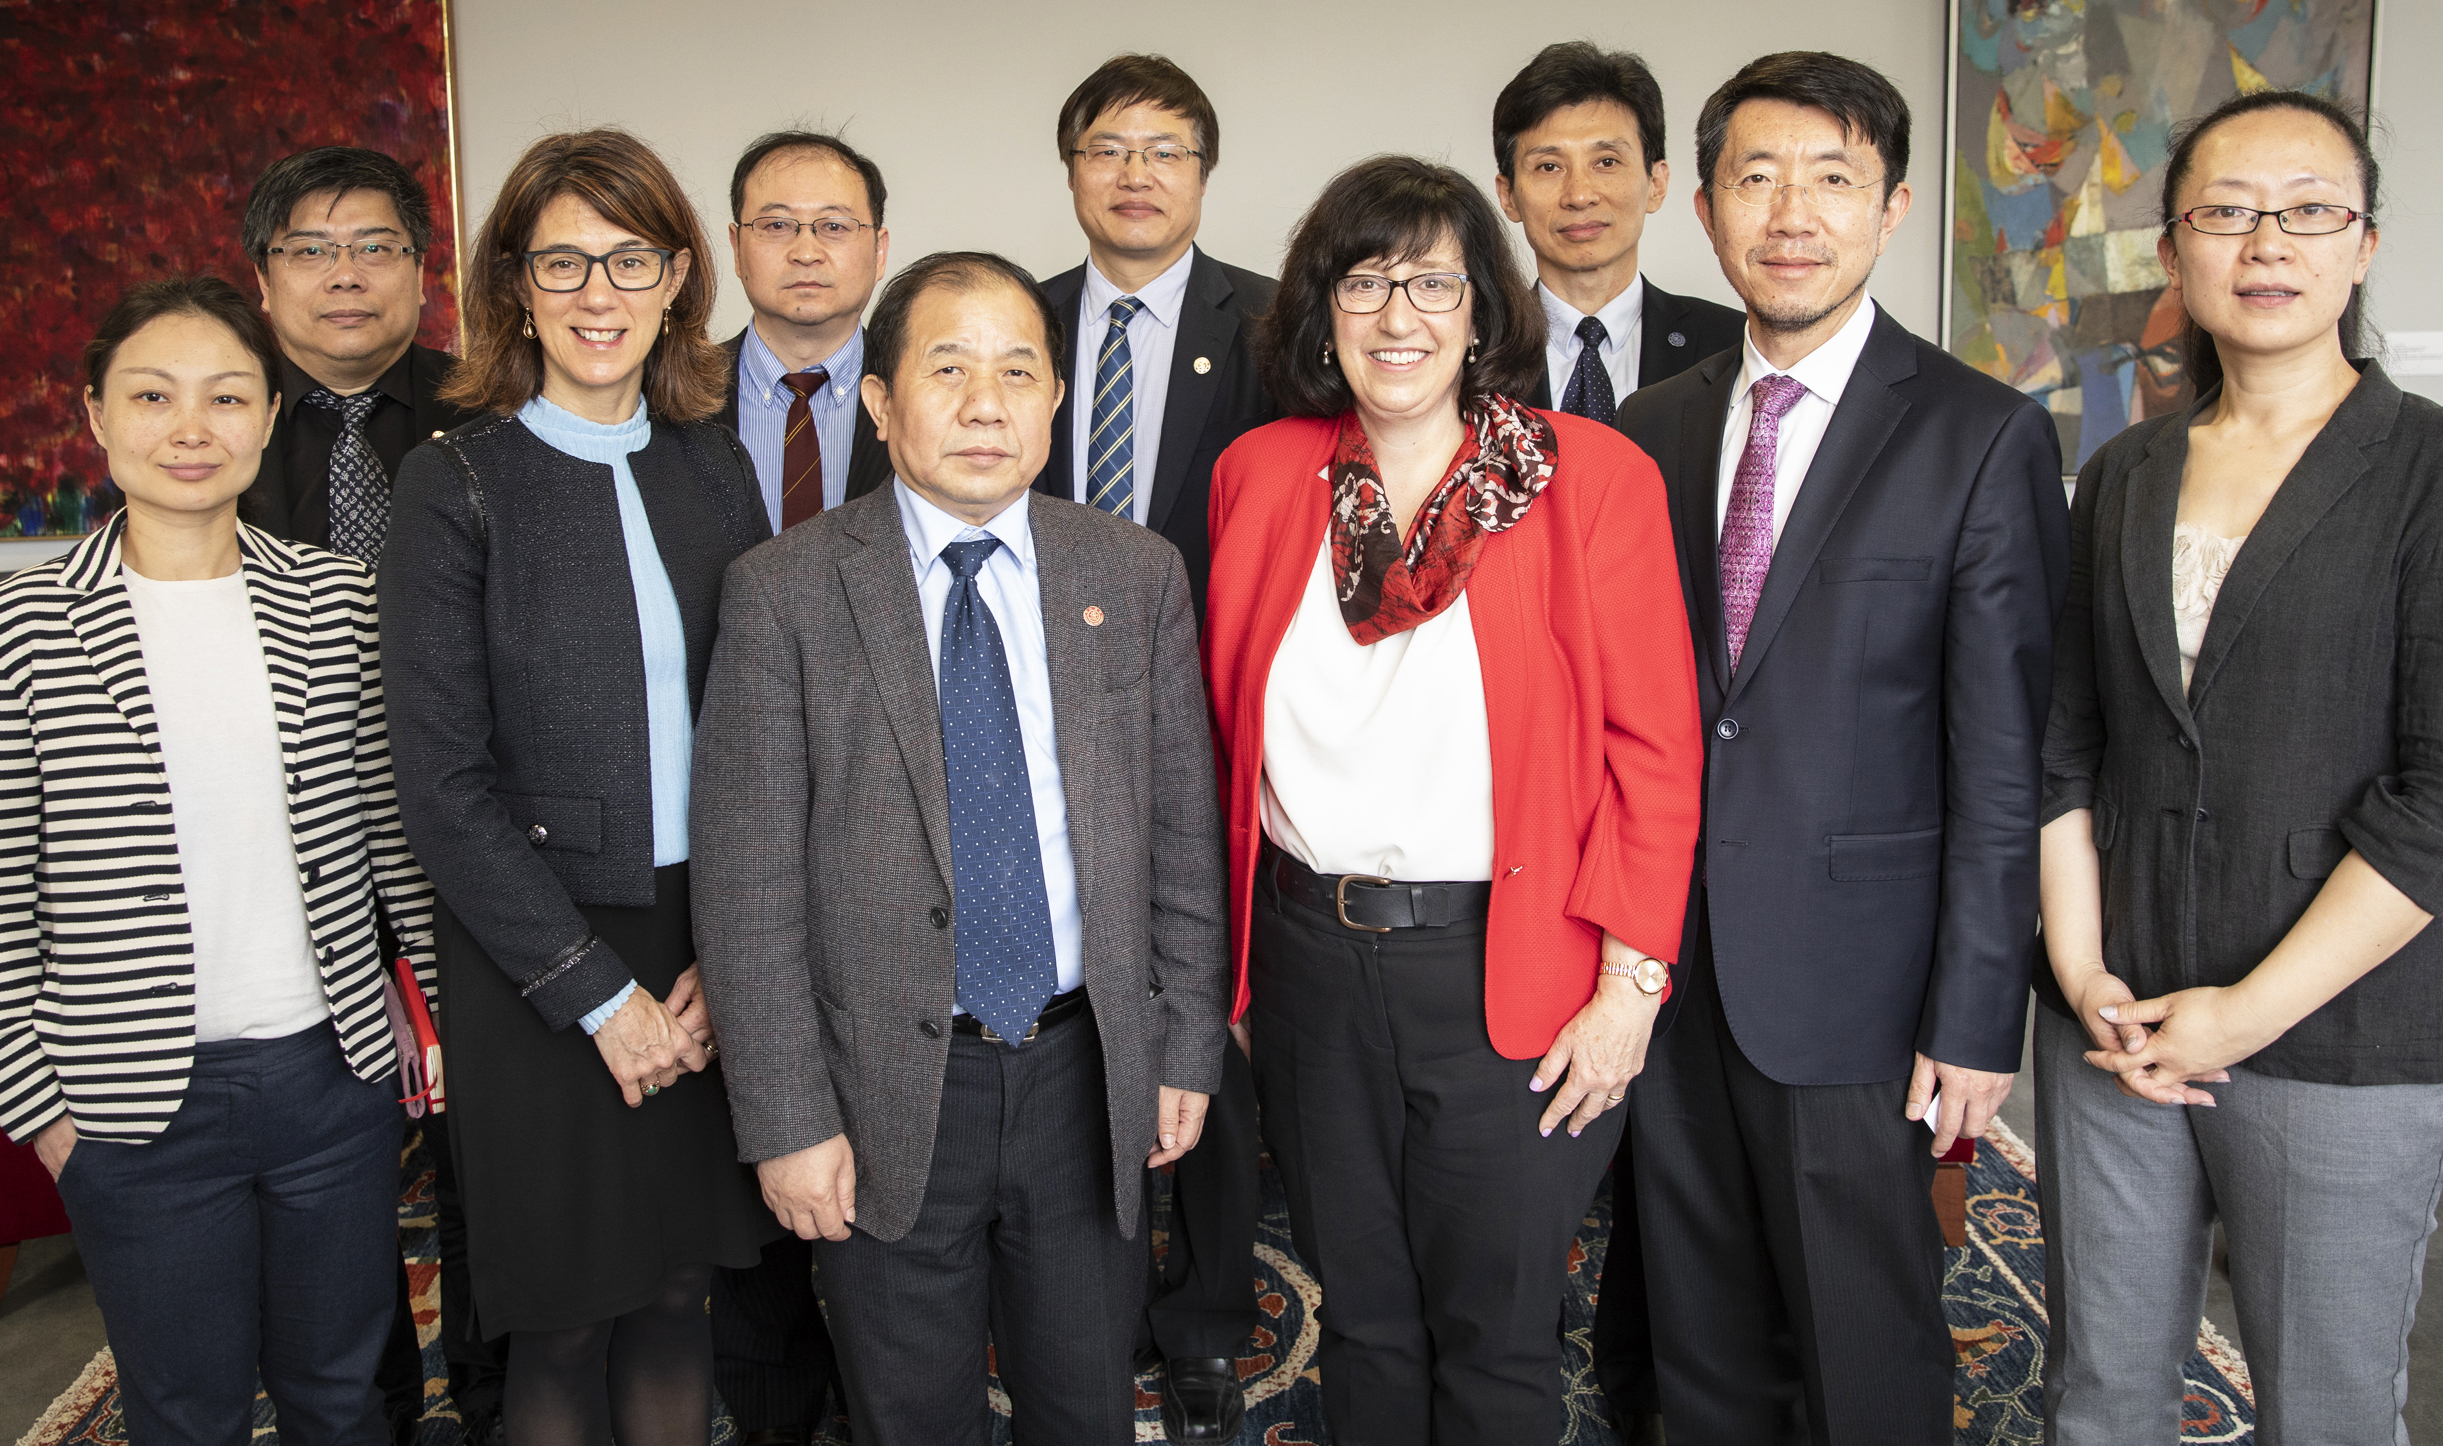 A delegation from Shanghai Jiao Tong University visits Cornell